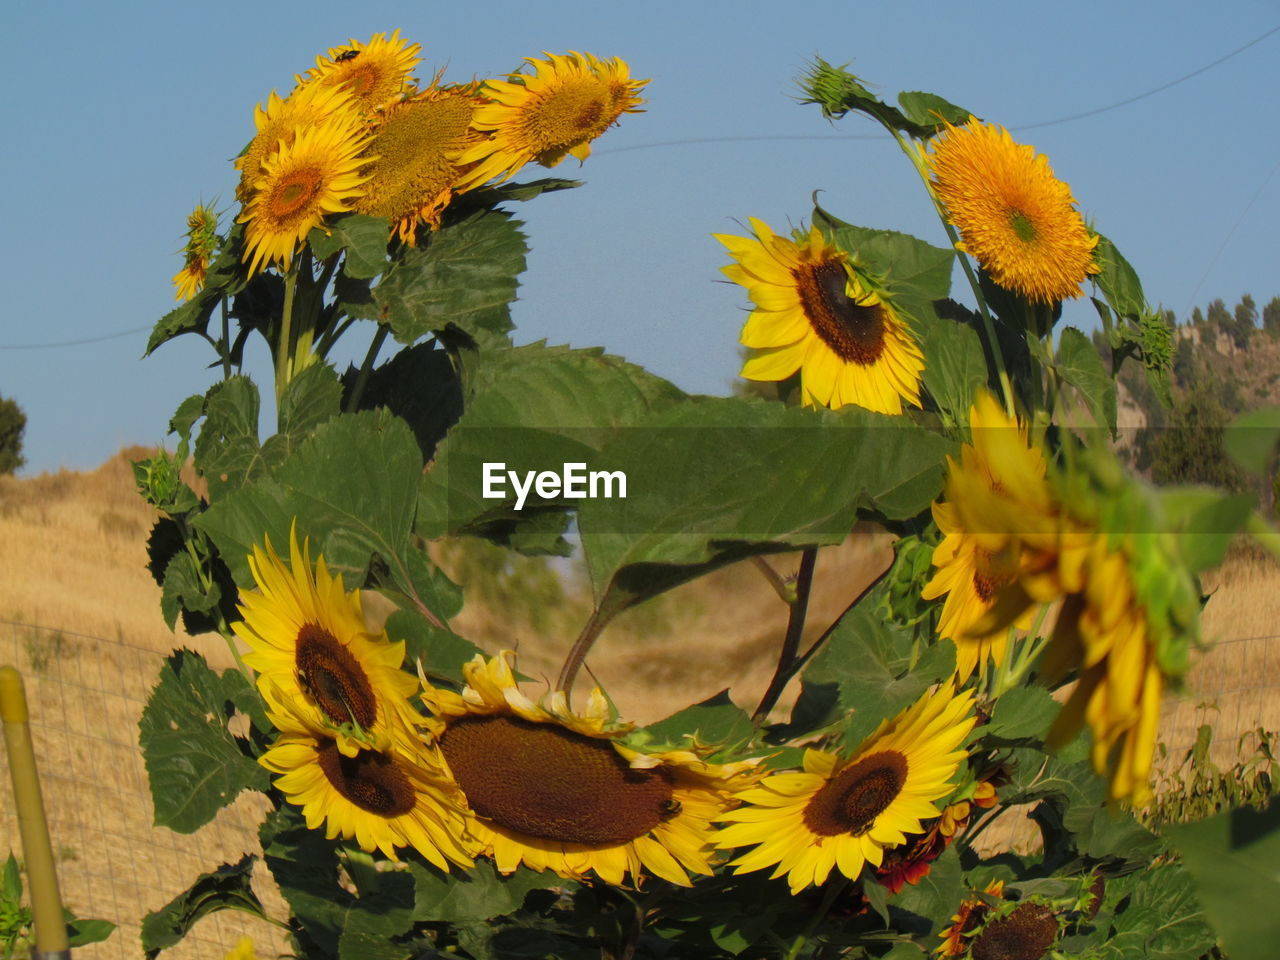 flower, yellow, growth, nature, plant, fragility, beauty in nature, petal, day, outdoors, no people, flower head, sky, field, freshness, sunflower, springtime, sunlight, leaf, close-up, clear sky, blooming, scenics